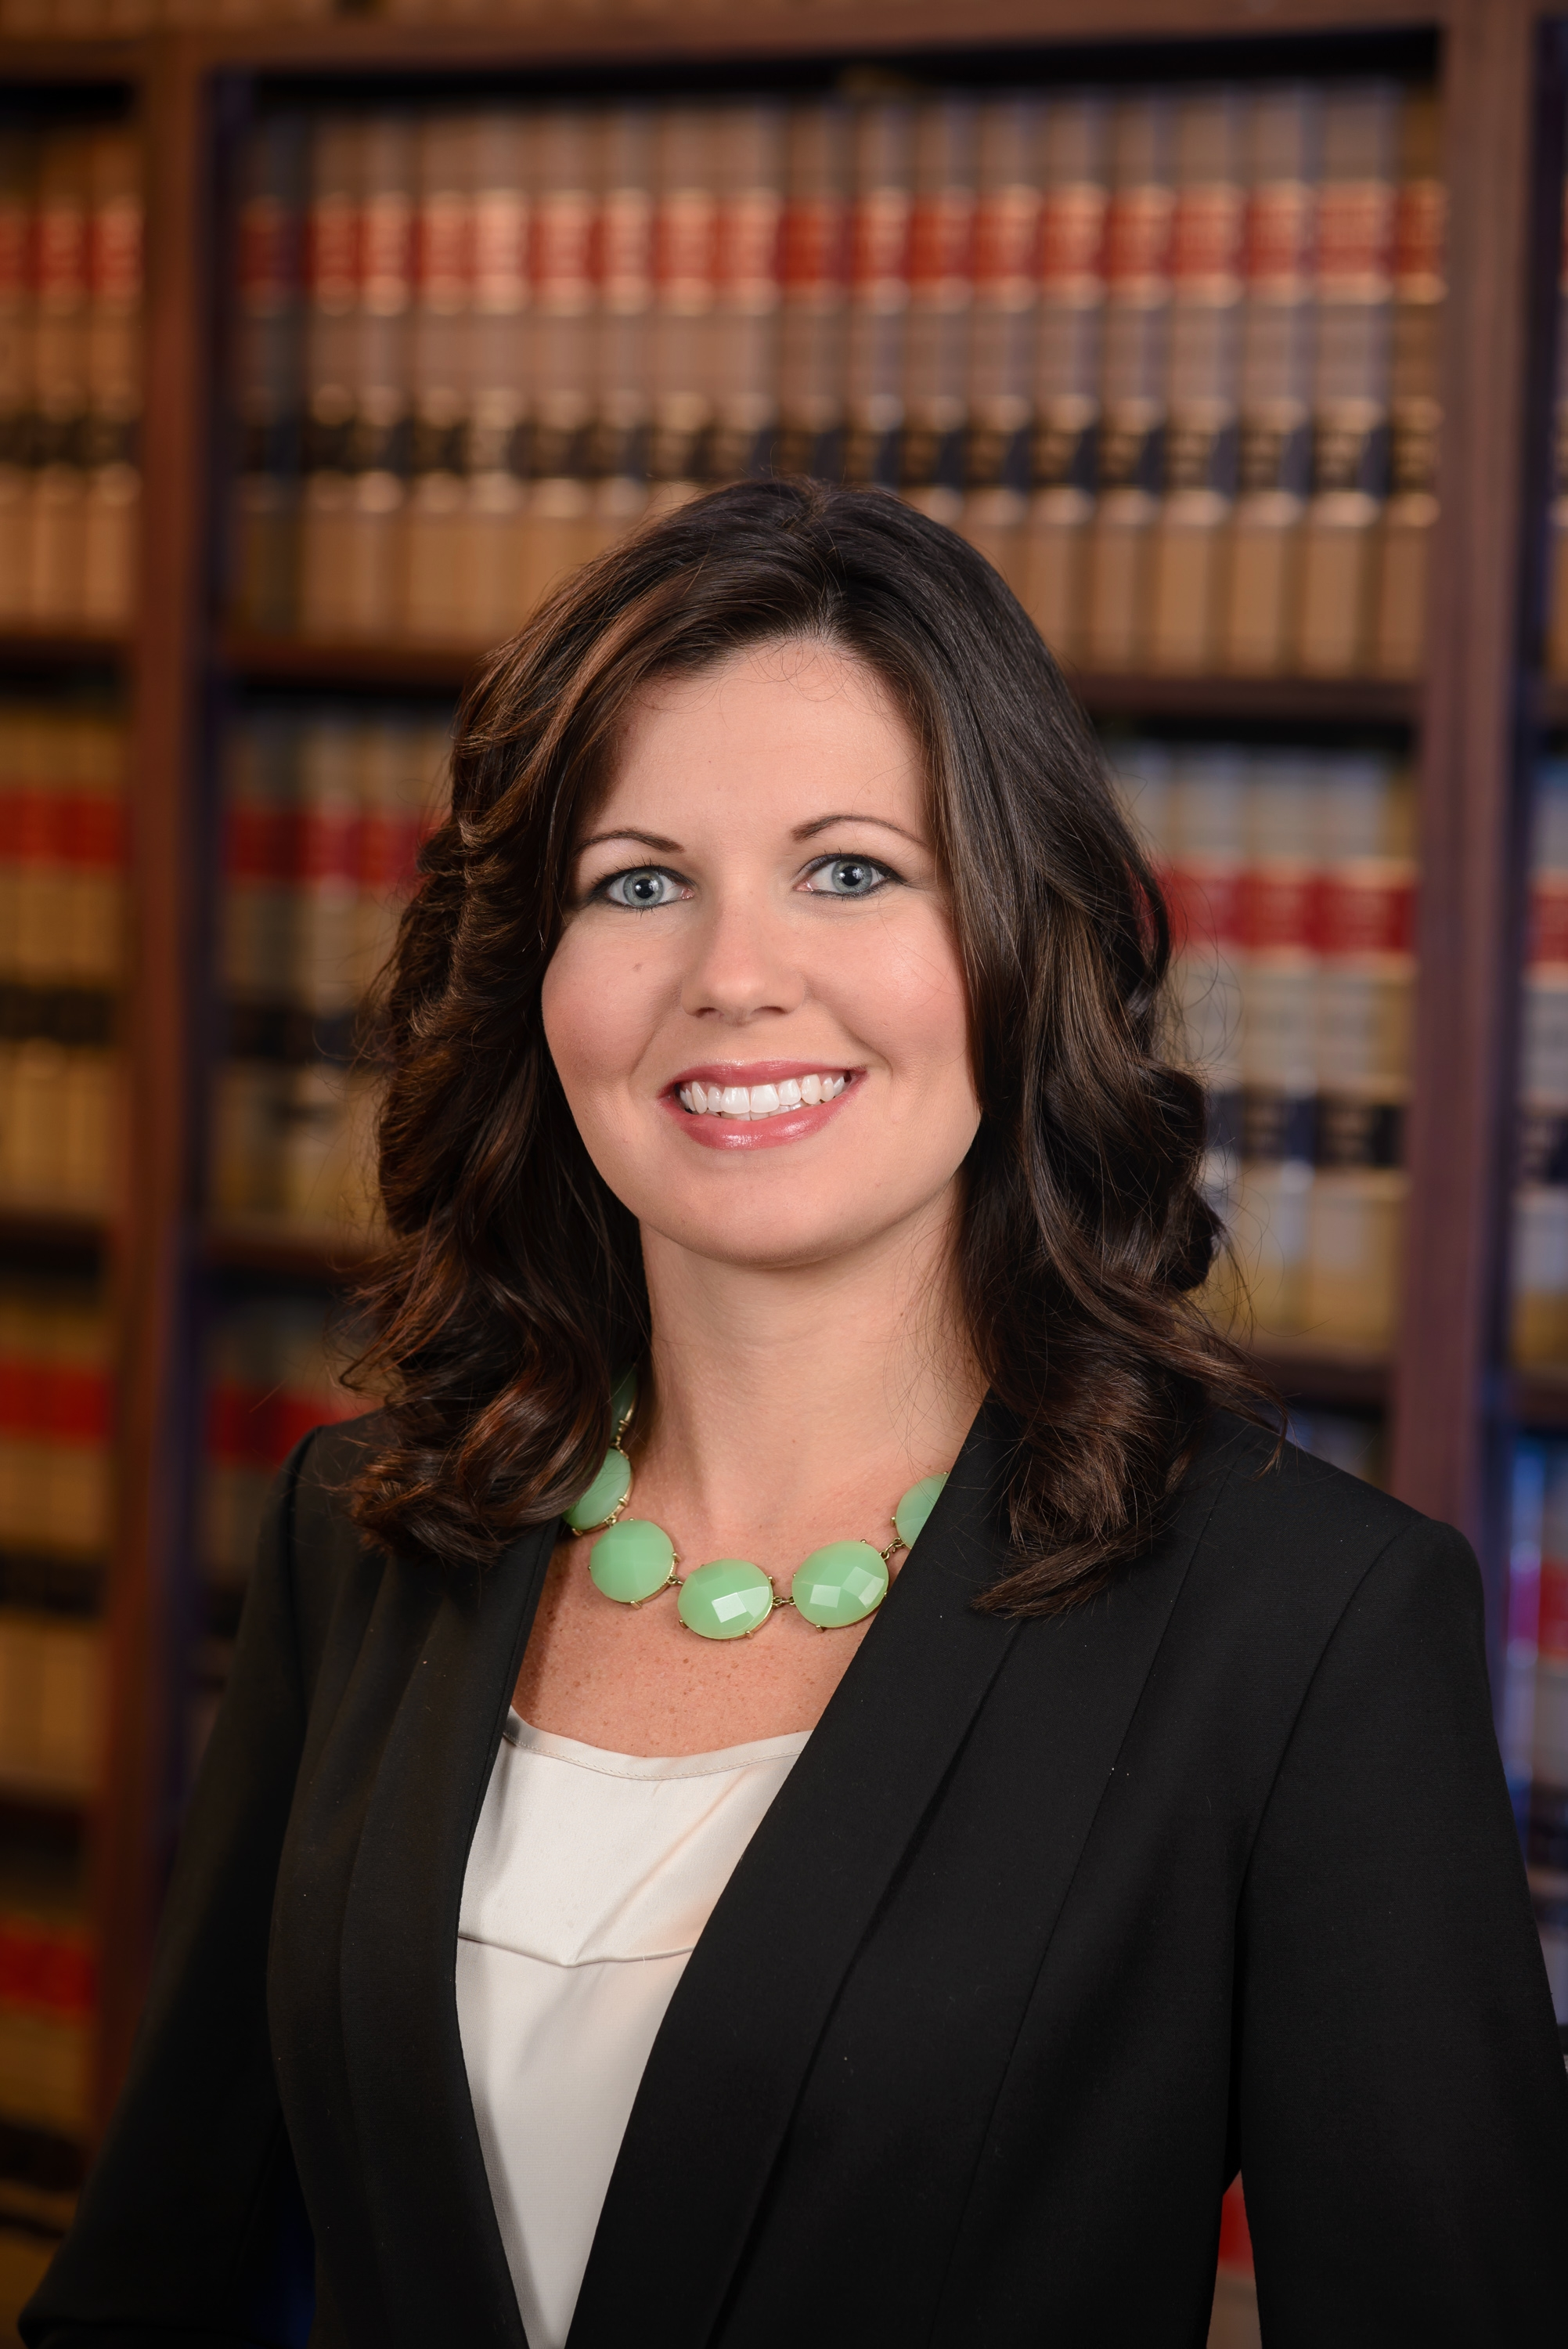 Meet AttorneyDena M. Rogers - Dena graduated from Stetson University College of Law in 2013 and is a distinguished member of the Florida Bar Association.Dena focuses her law practice on probate administration, trust administration, estate planning, and litigation related to these areas of practice to better serve her clients.When not working, Dena enjoys traveling with her husband. Currently she has visited over 20 countries on 6 of the 7 continents.